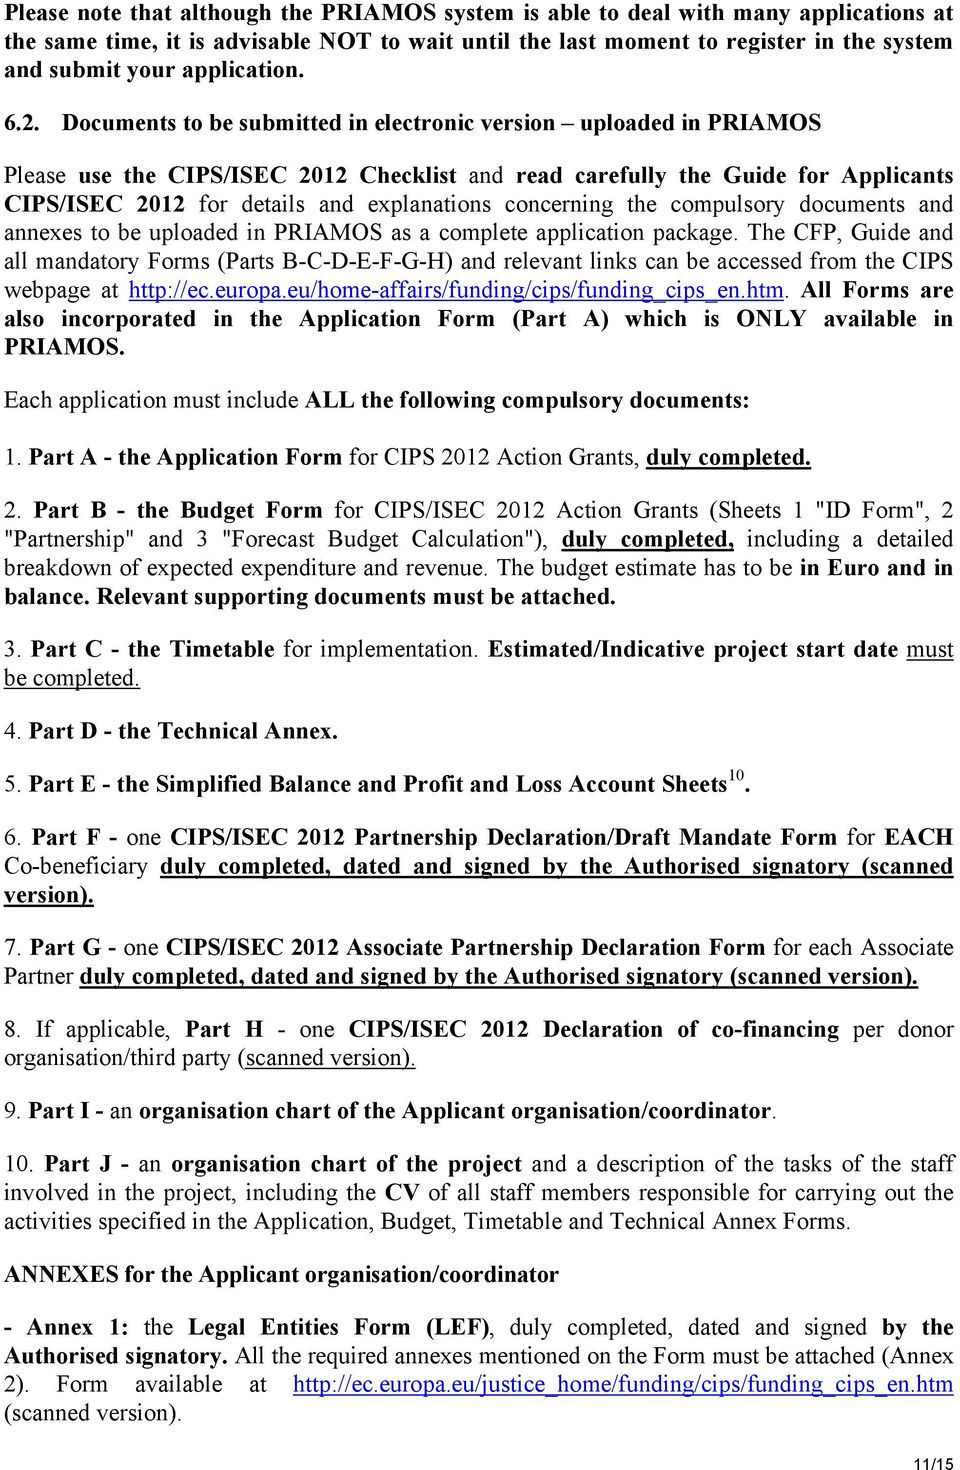 Documents to be submitted in electronic version uploaded in PRIAMOS Please use the CIPS/ISEC 2012 Checklist and read carefully the Guide for Applicants CIPS/ISEC 2012 for details and explanations